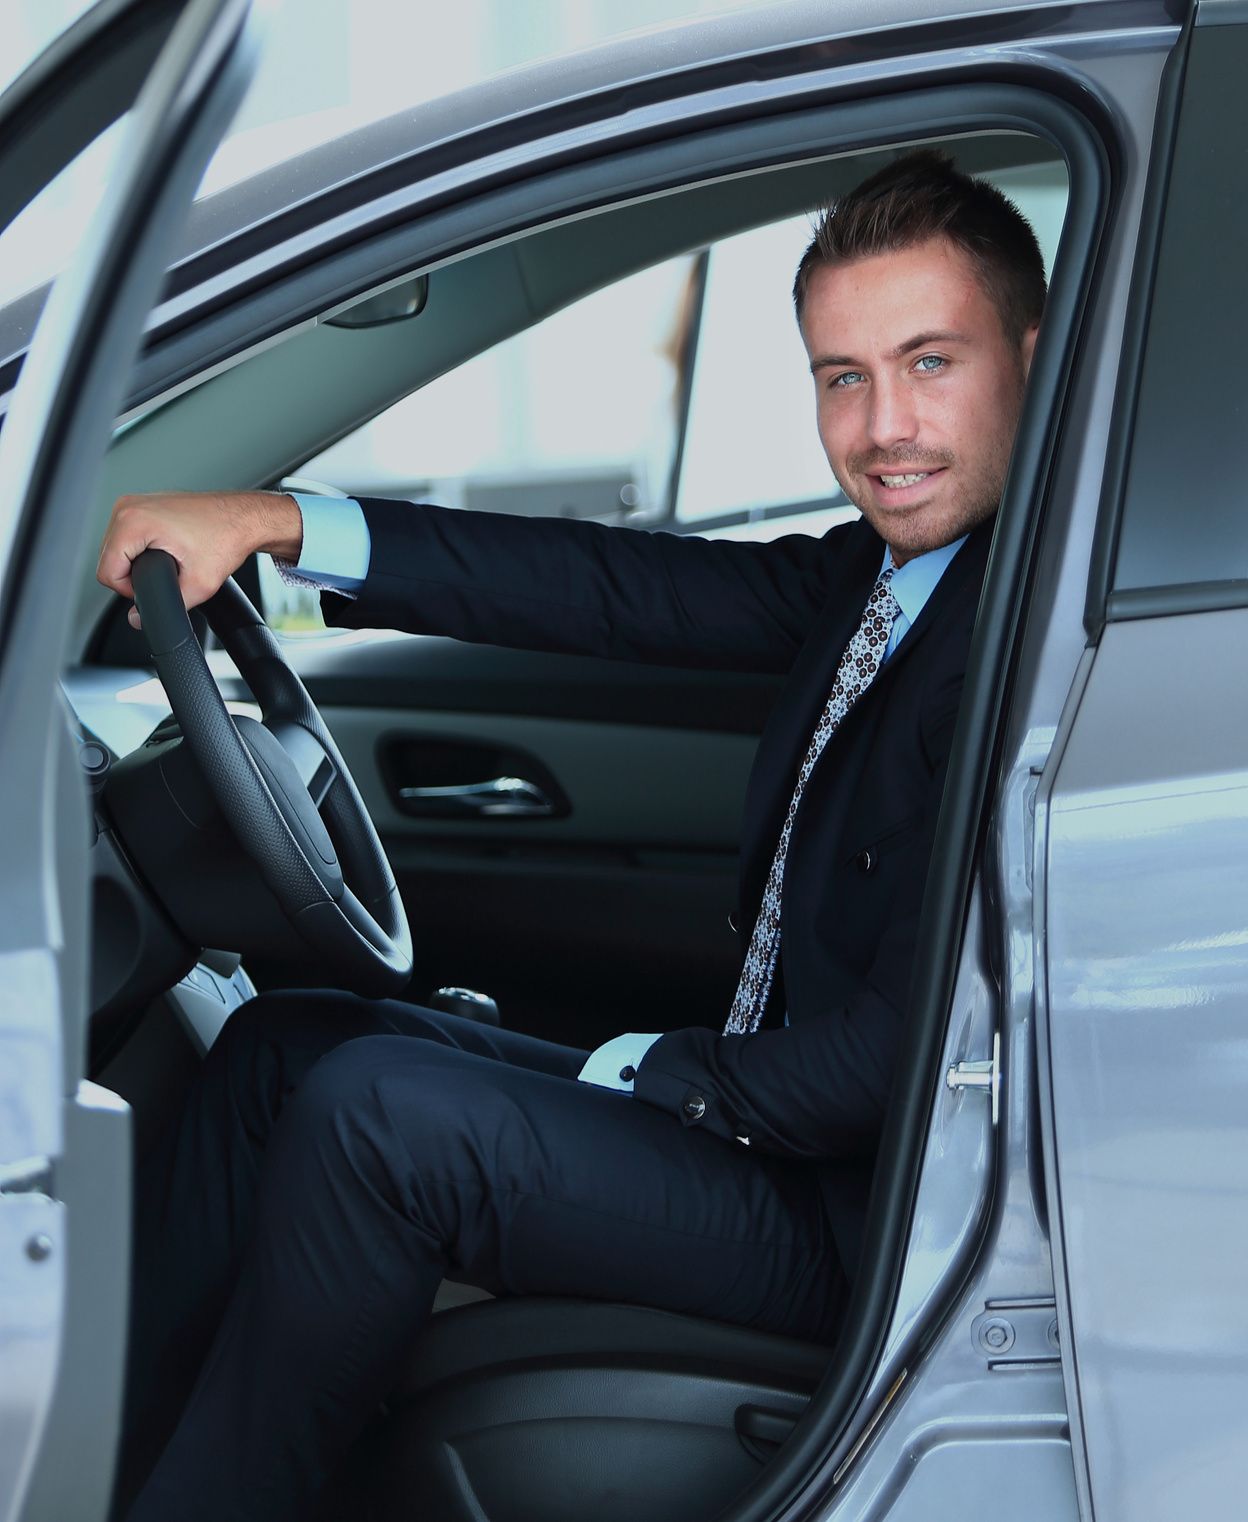 5 Proven Ways to Make Money with Cars